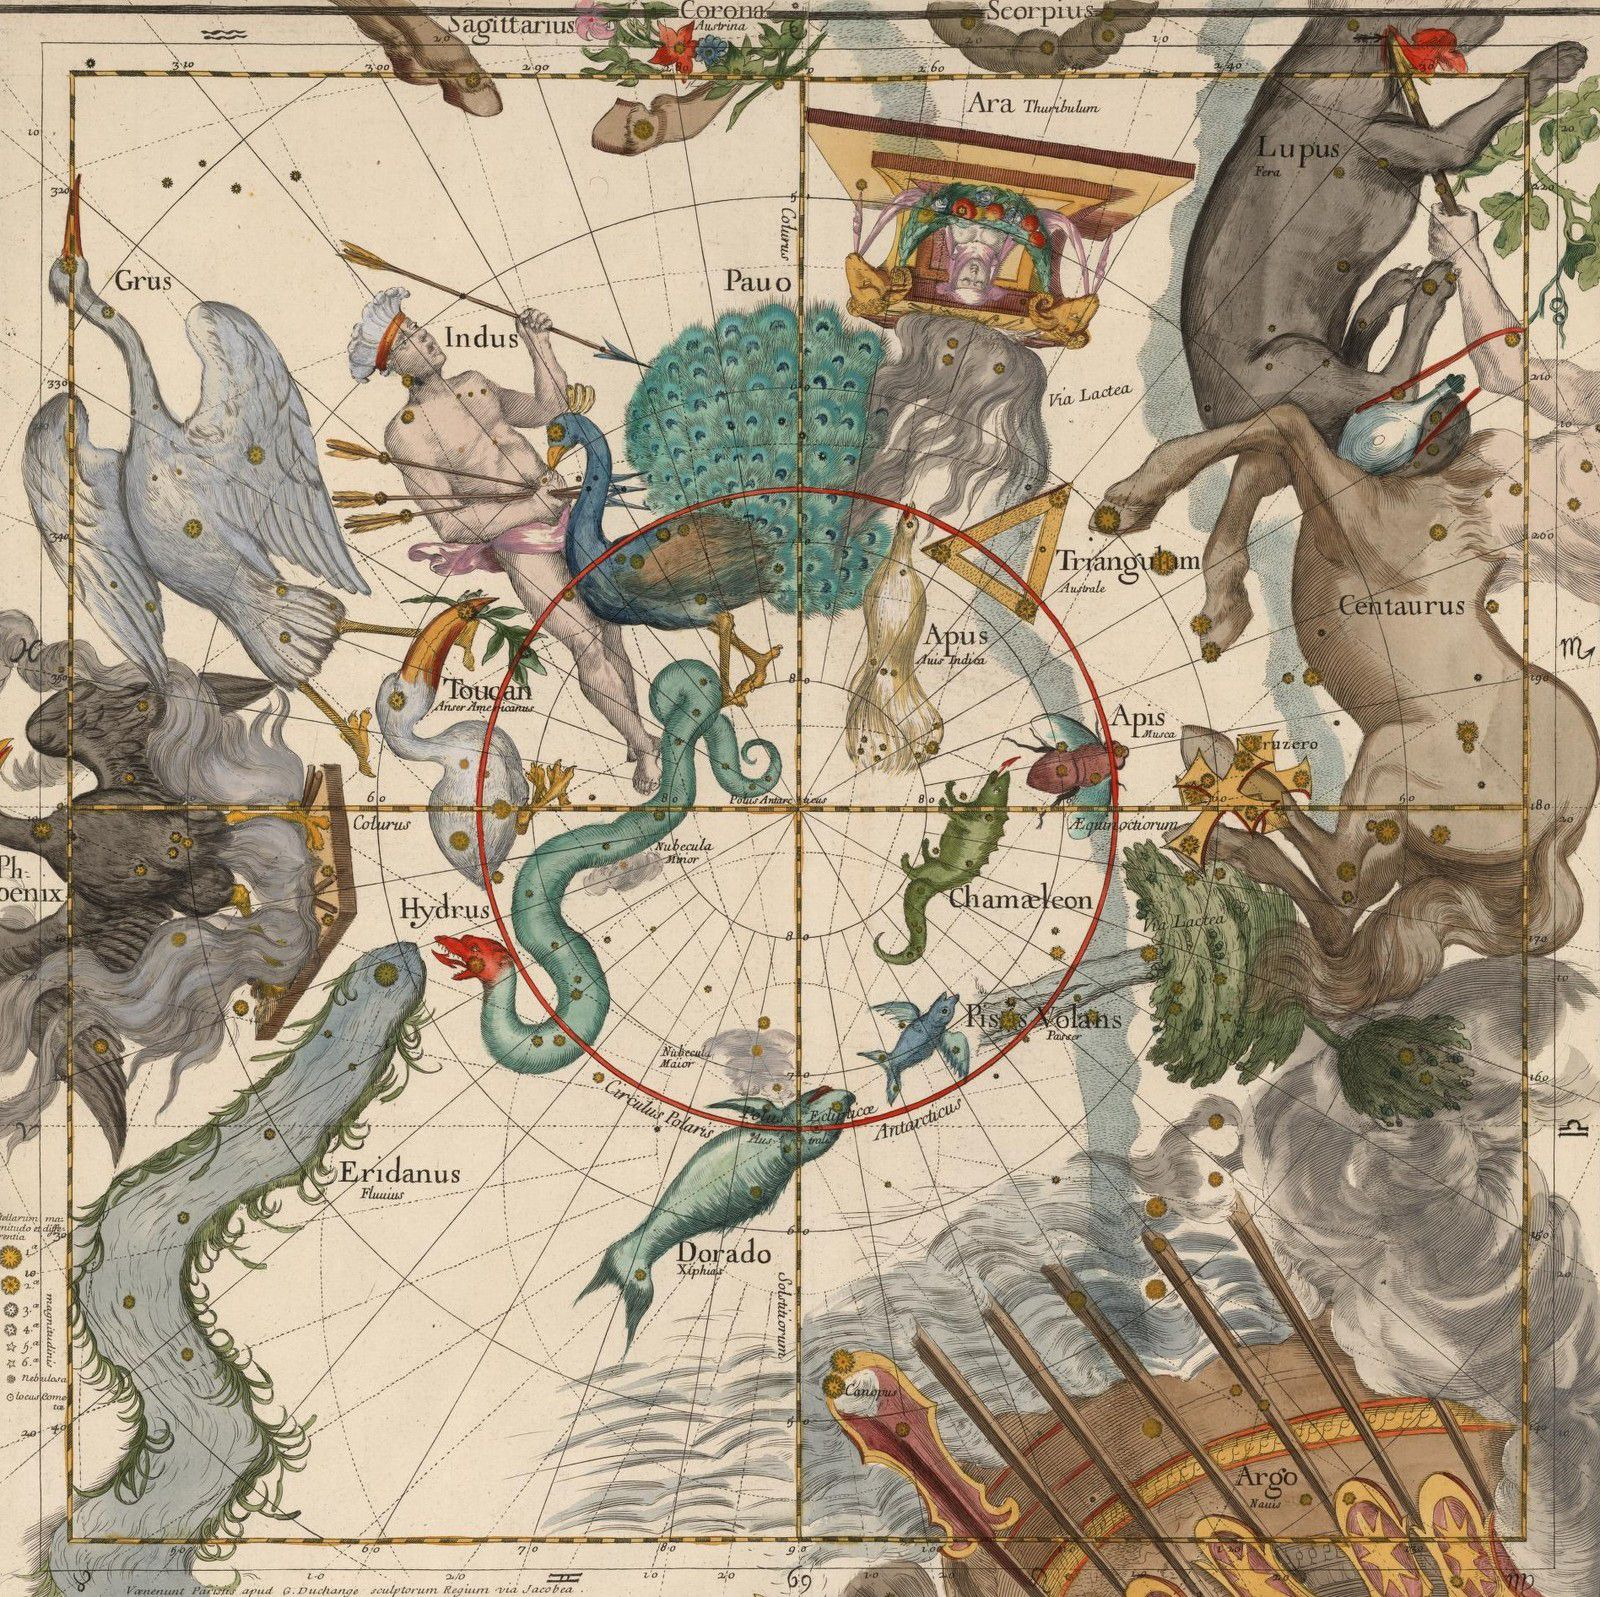 Plate 6: Centaurus, Indus, Chamaeleon and other constellations by Ignace Gaston Pardies, 1636-1673